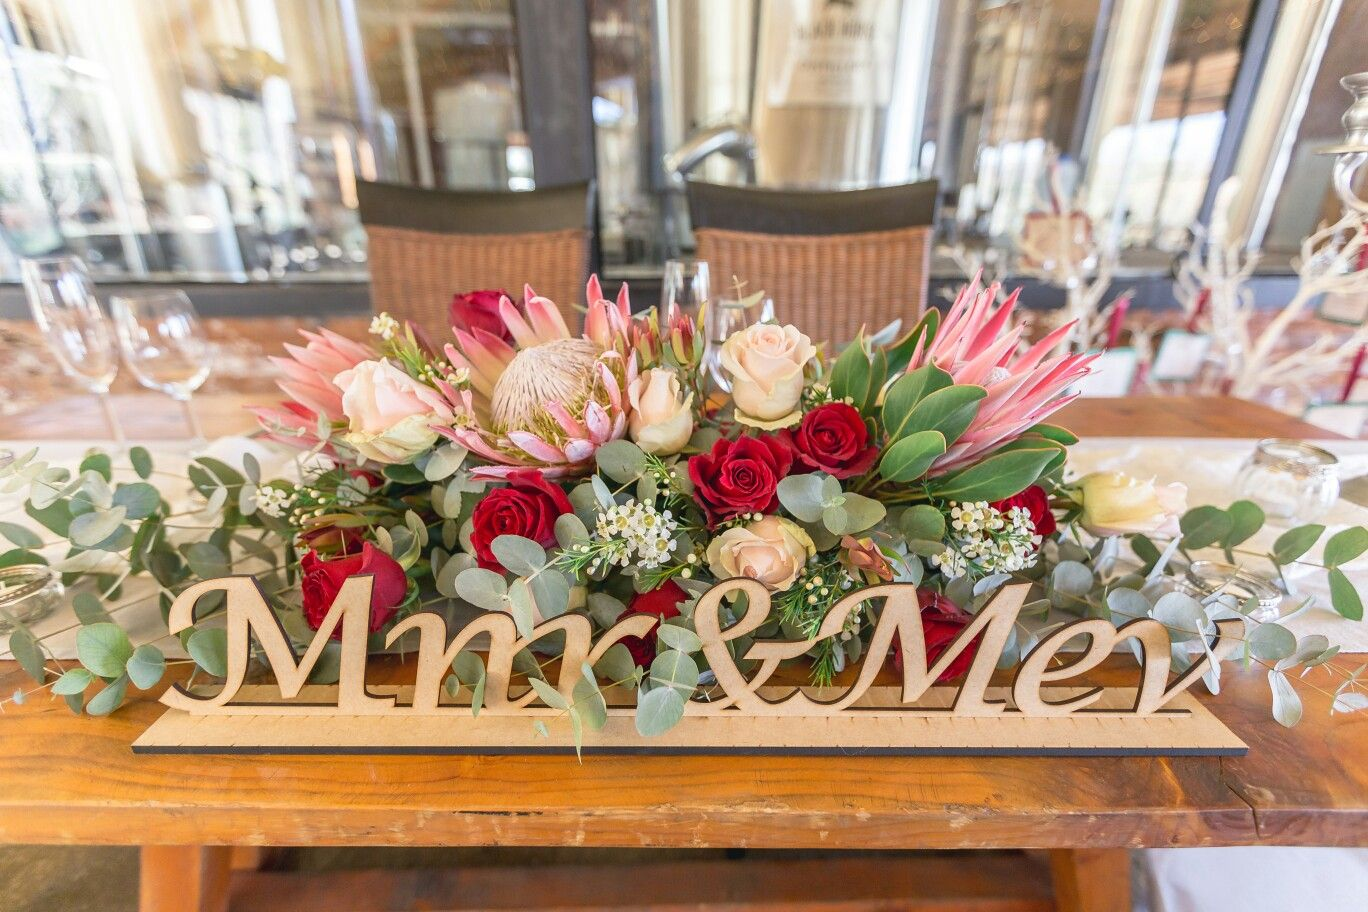 Bride And Groom Table Flower Arrangement With Proteas And Roses Table Flower Arrangements Wedding Table Flowers Brides Table